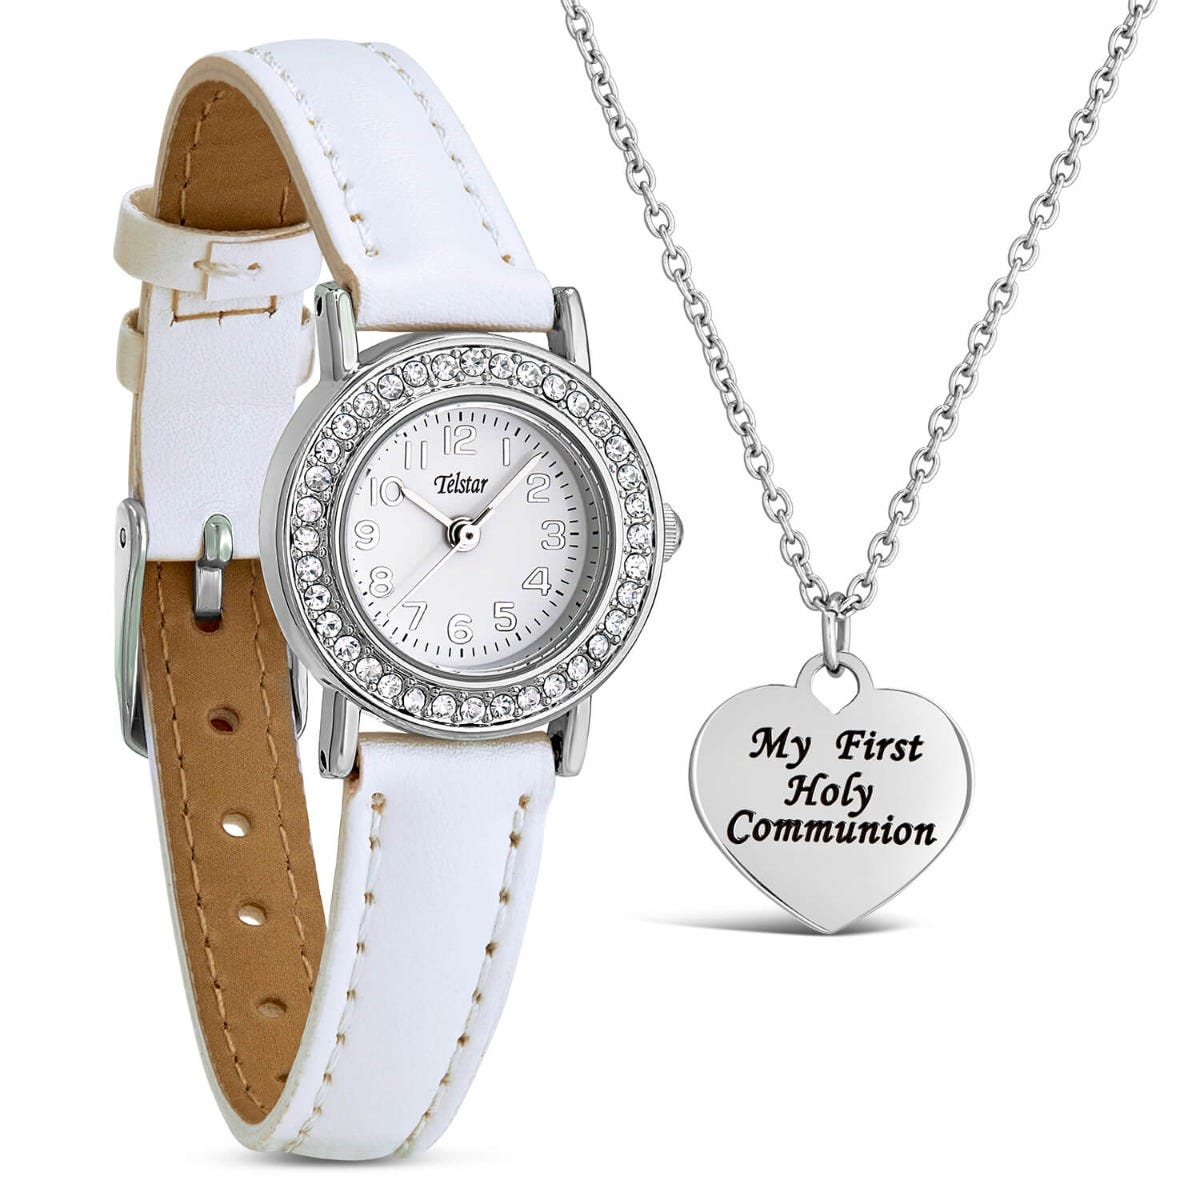 Telstar Crystal Watch & Communion Necklace Set